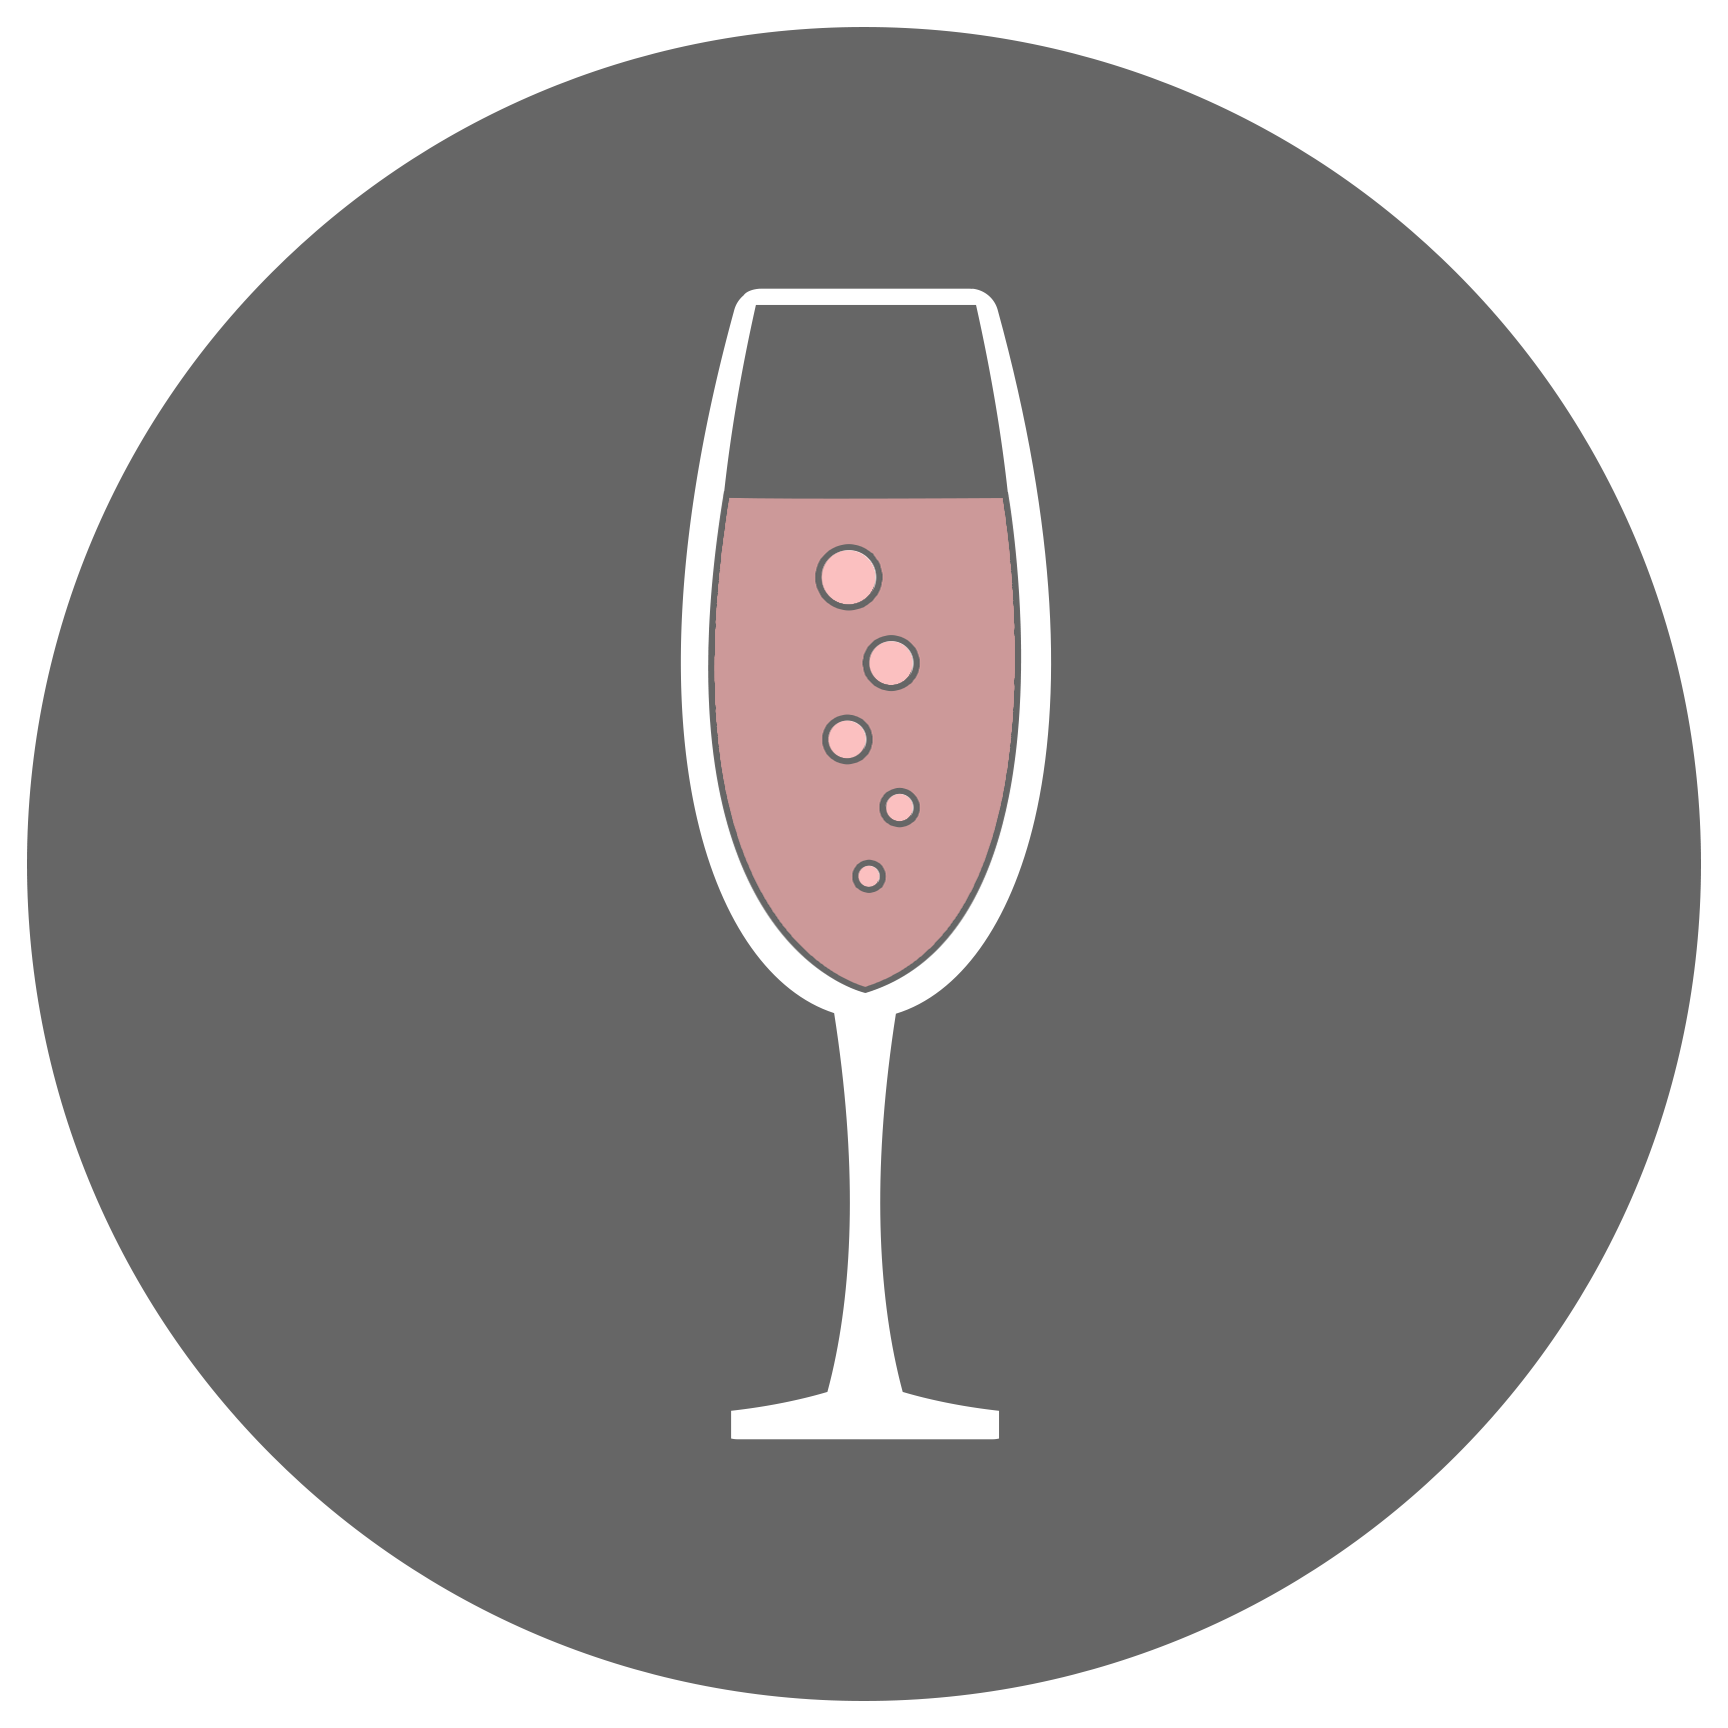 speeches-toasts-icon.png